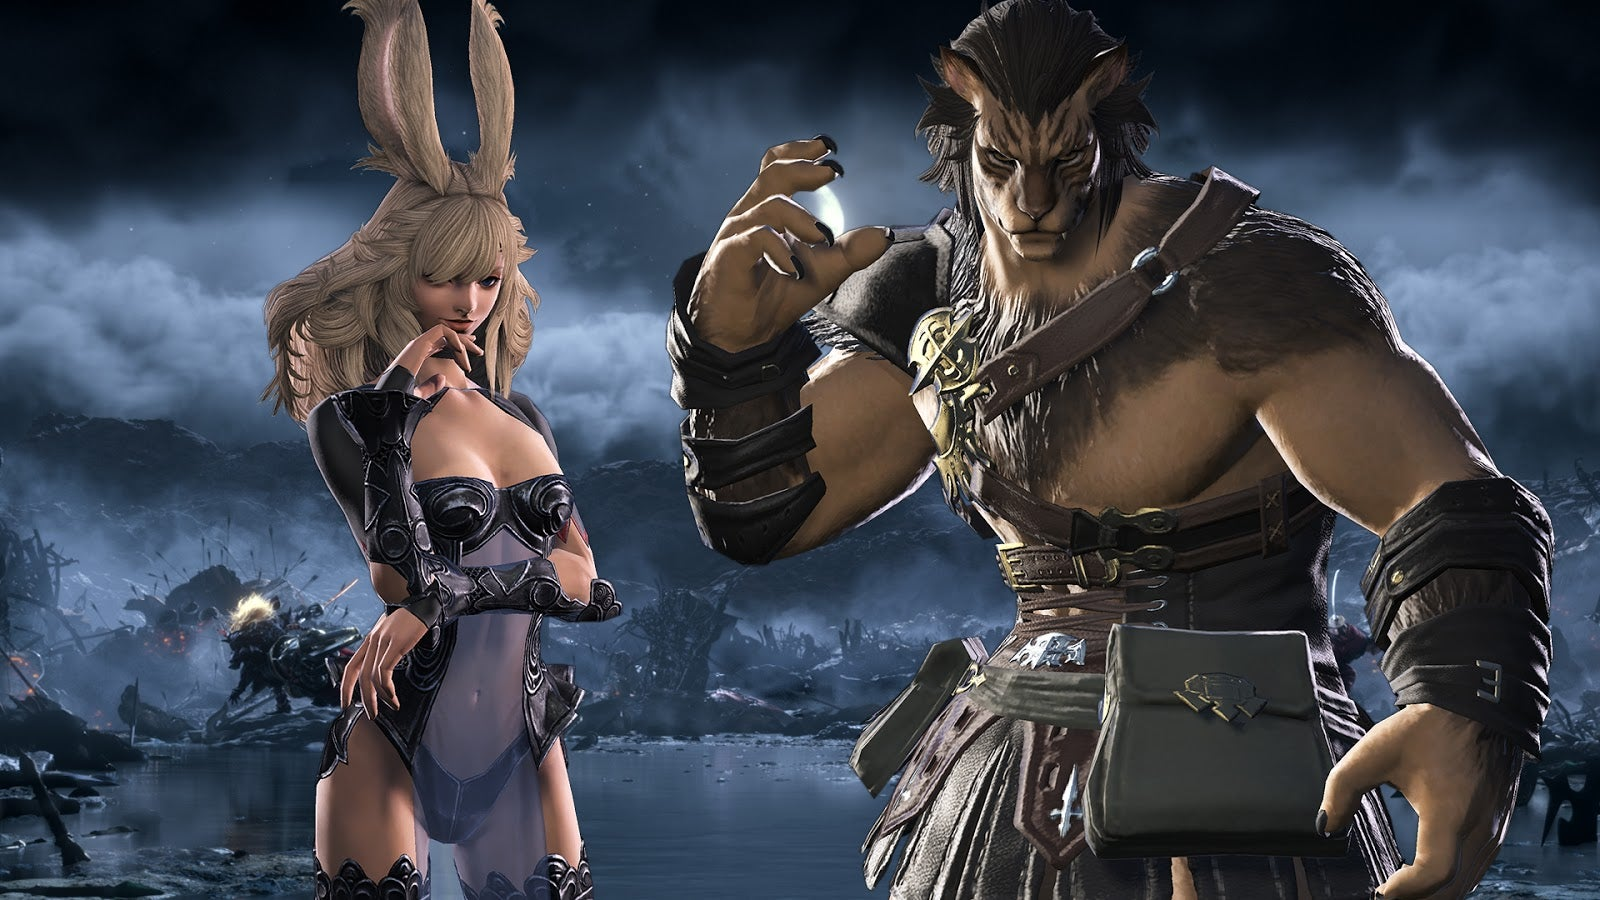 Final Fantasy XIV's Newest Races Are Gender-Locked, And Players Are